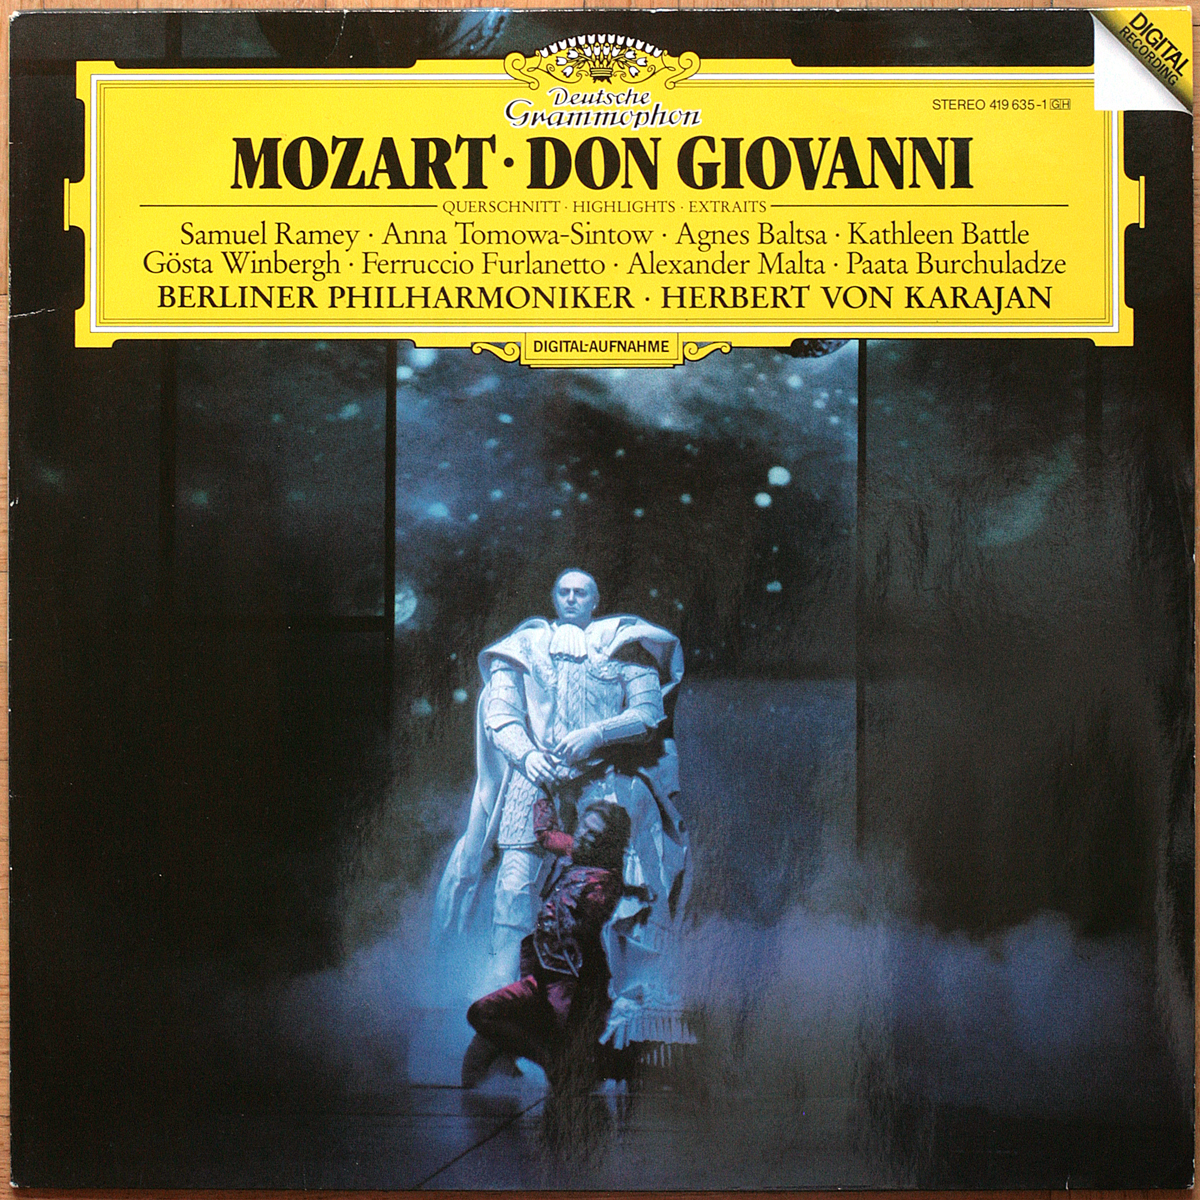 DGG 419 635 Mozart Don Giovanni Highlights Karajan DGG Digital Aufnahme